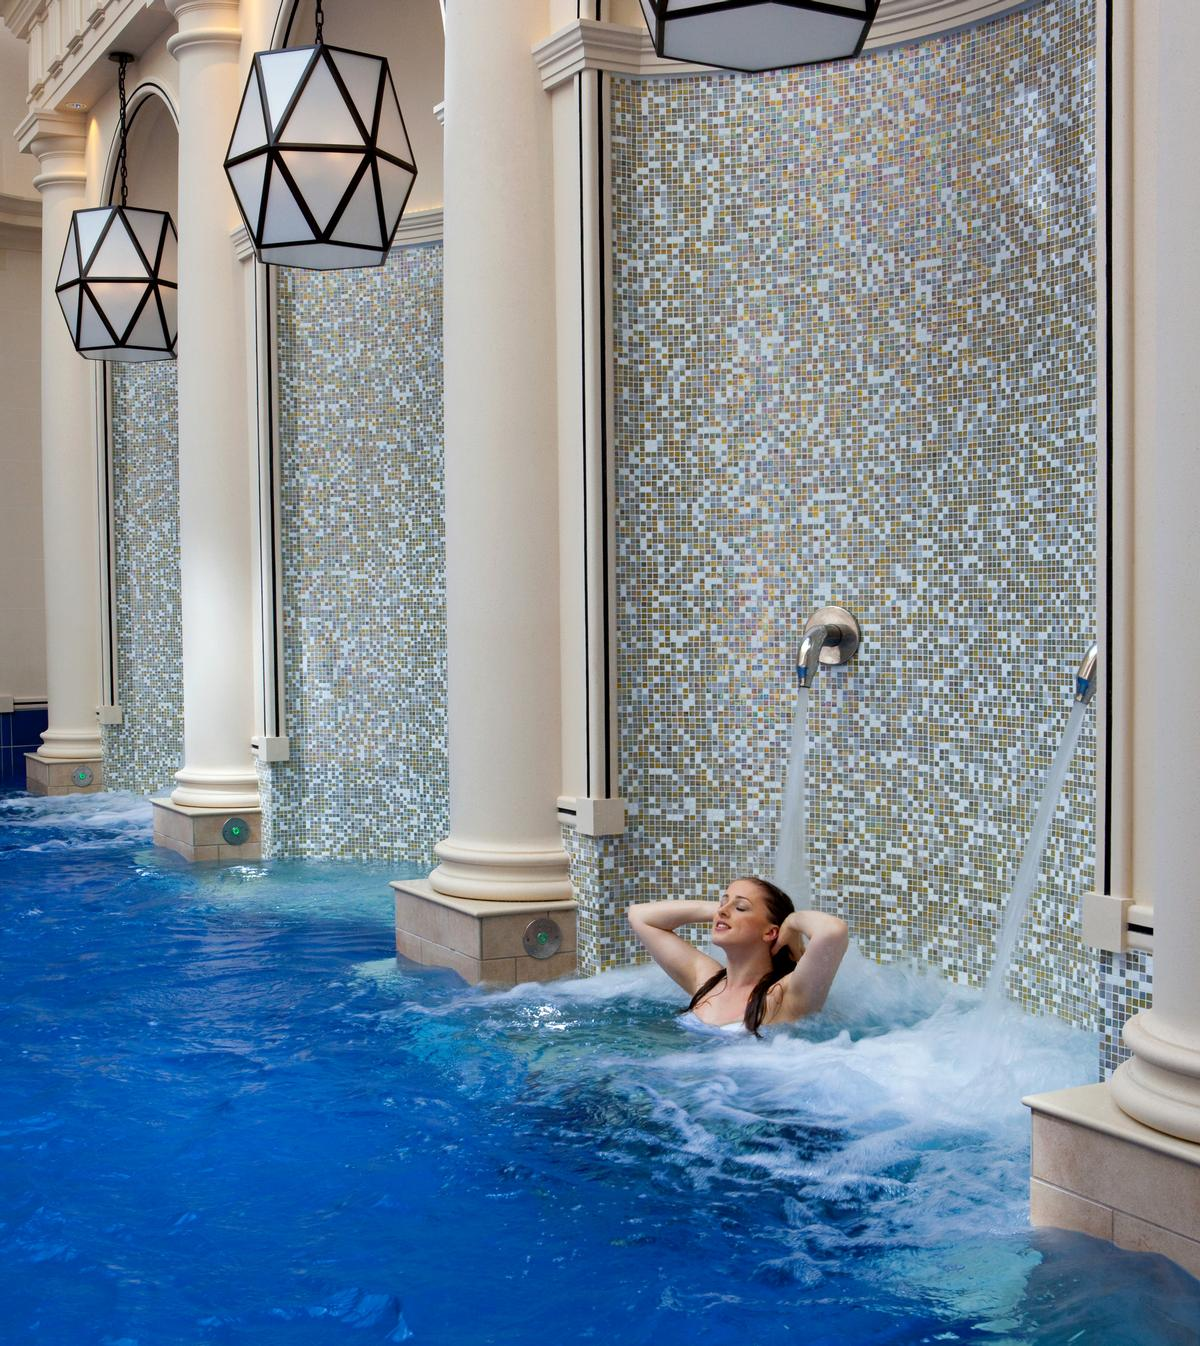 Pump Room Violinist Lavender Infused Drinking Water On Tap As Gainsborough Bath Spa Offers First Ever Spa Day Packages Architecture And Design News Cladglobal Com